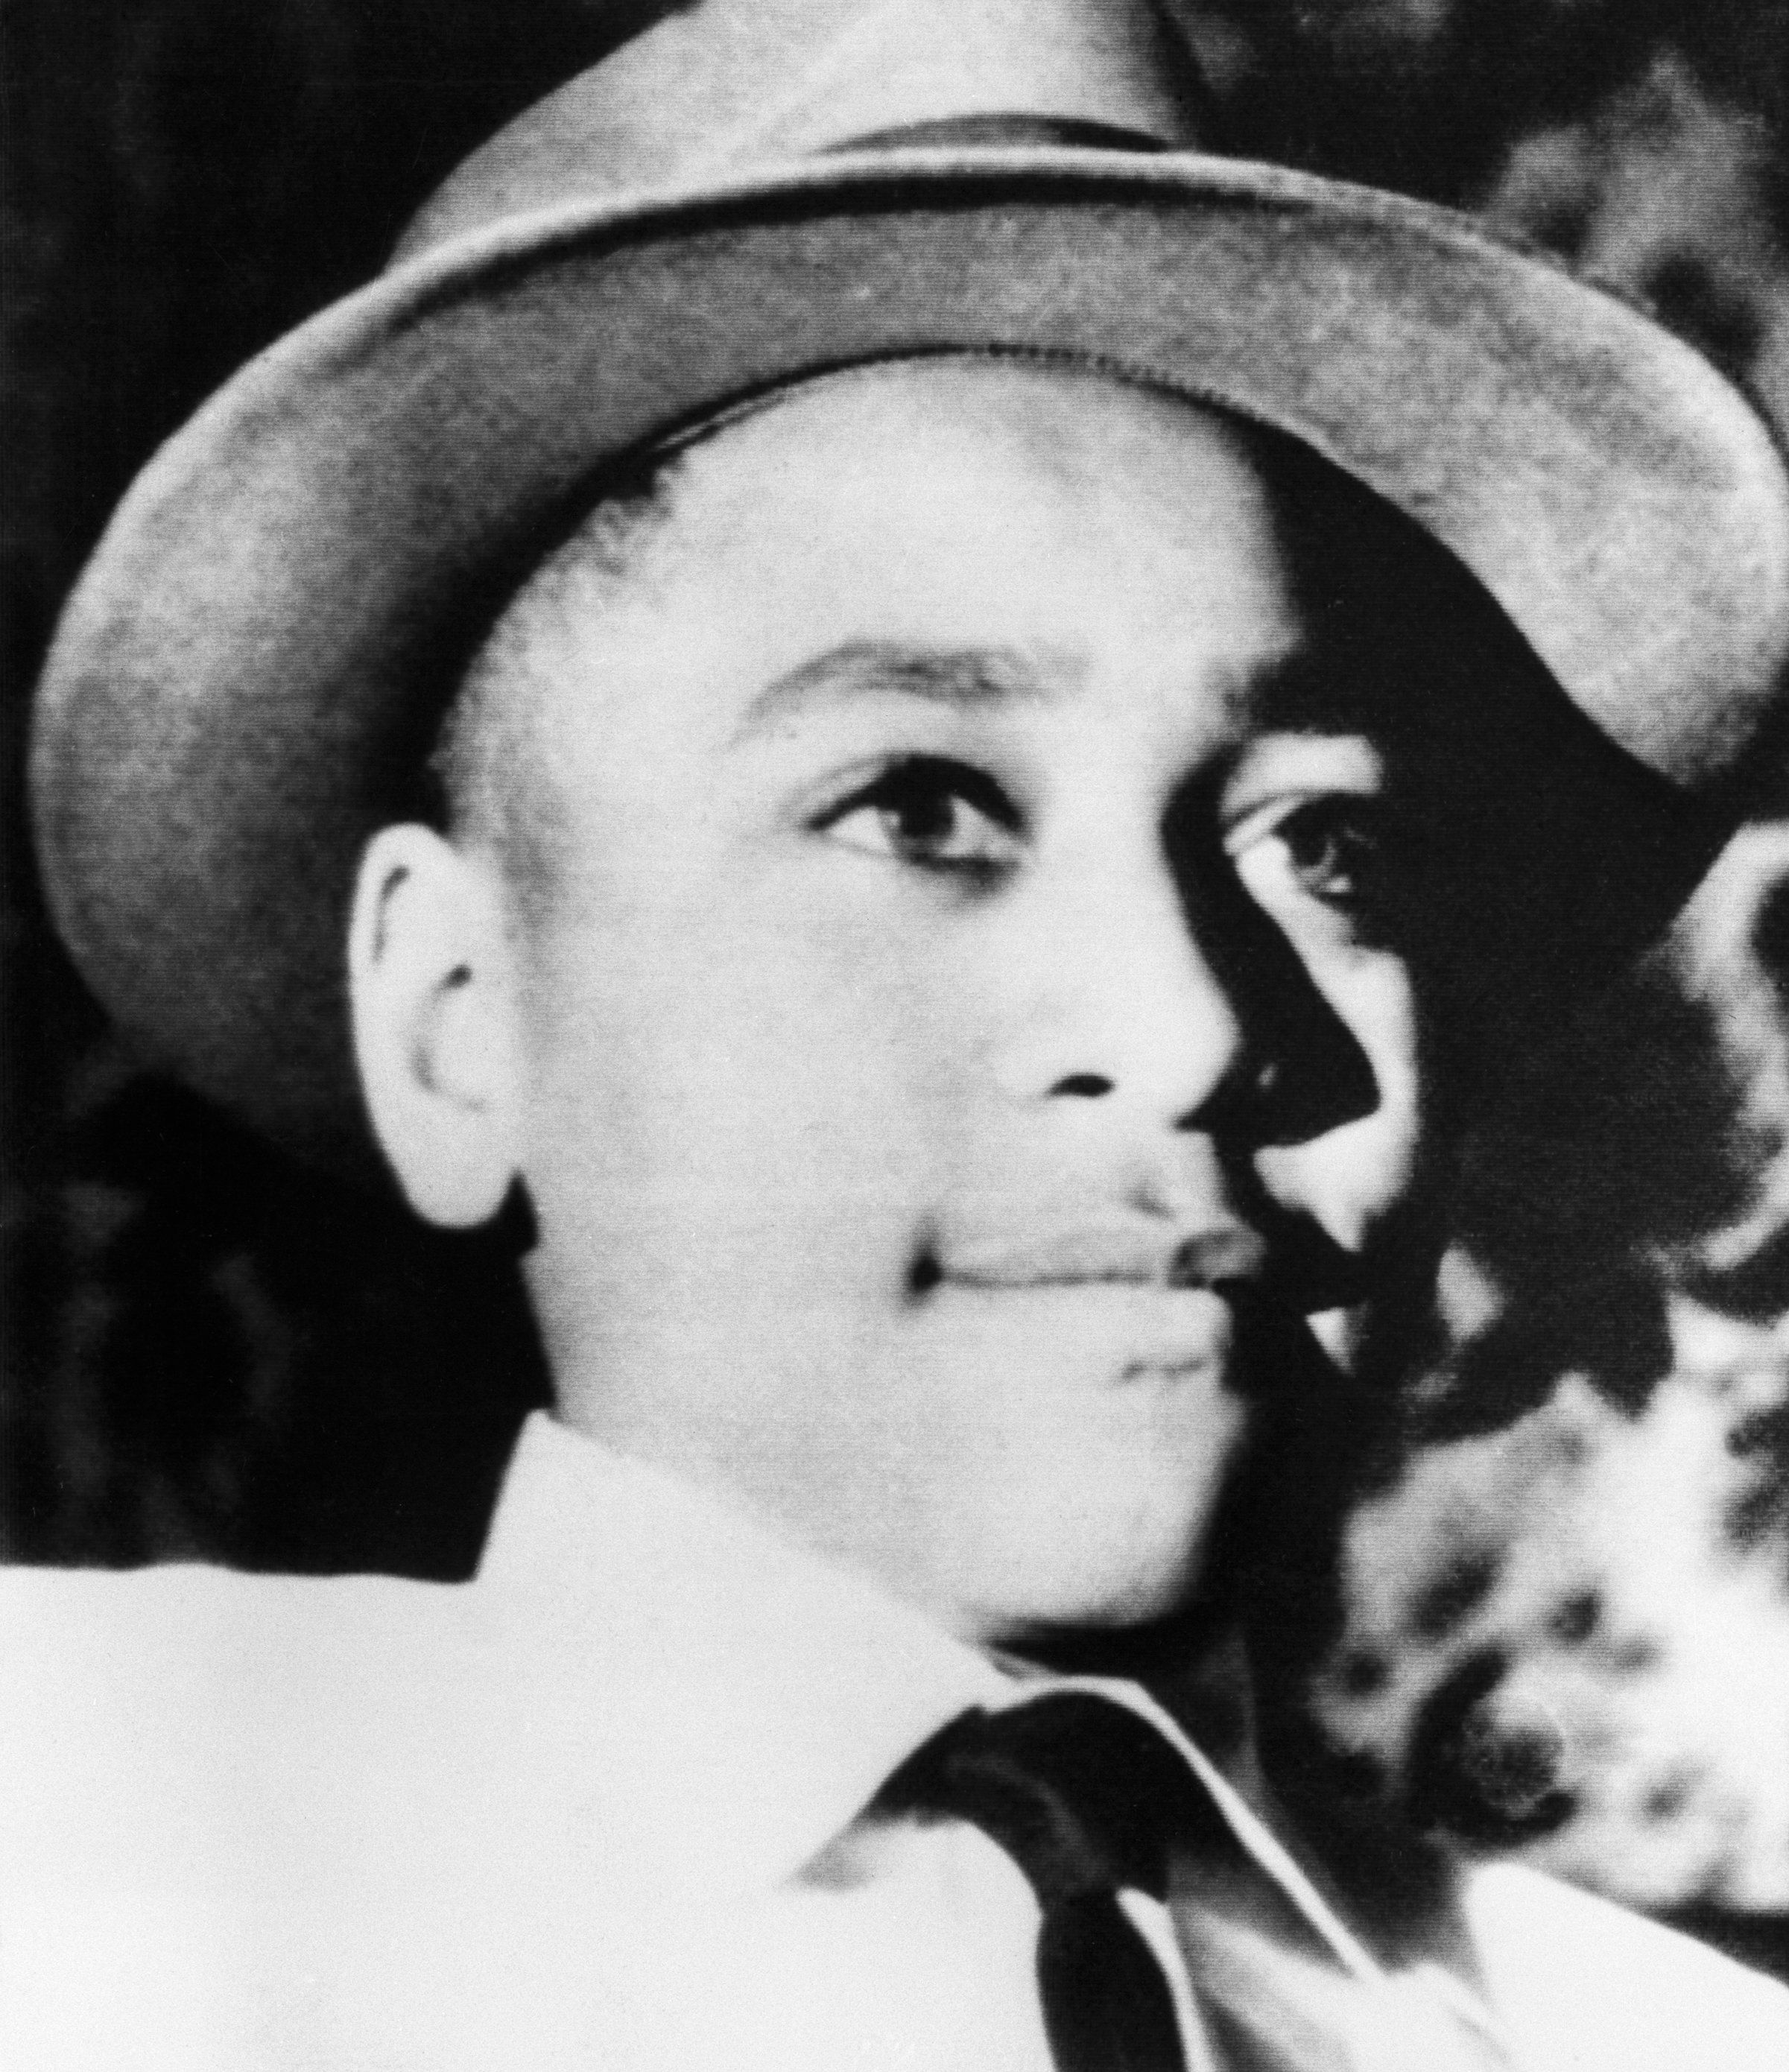 Chicago native Emmett Till, 14, was brutally murdered in Mississippi after a white woman accused ofhim of sexual miscon